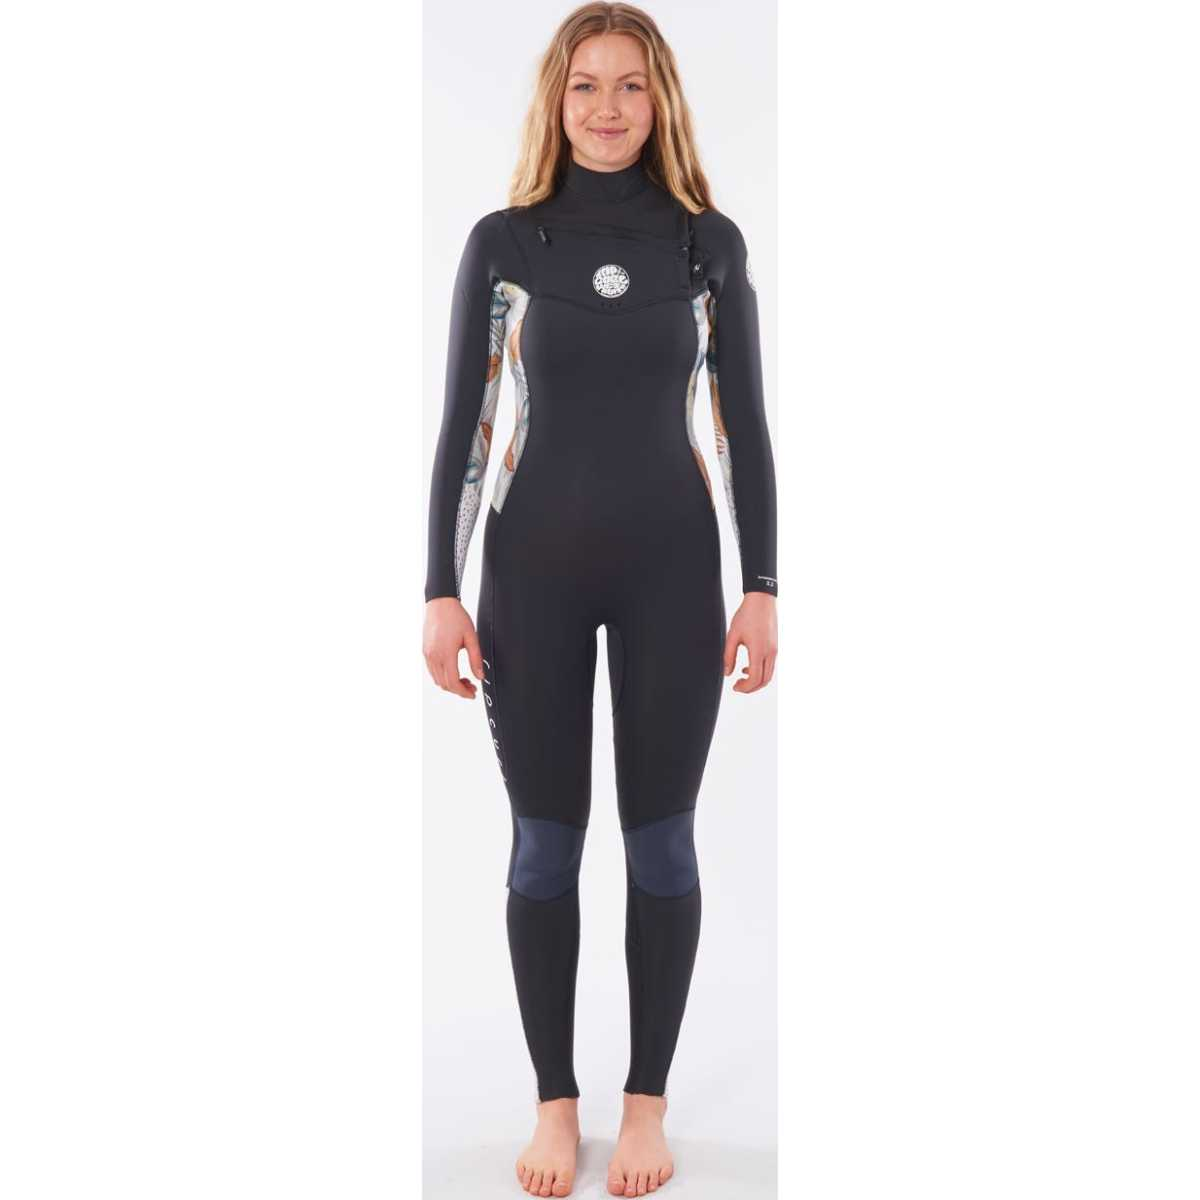 Rip Curl Women'S Dawn Patrol 3/2 Chest Zip Wetsuit In Charcoal Grey